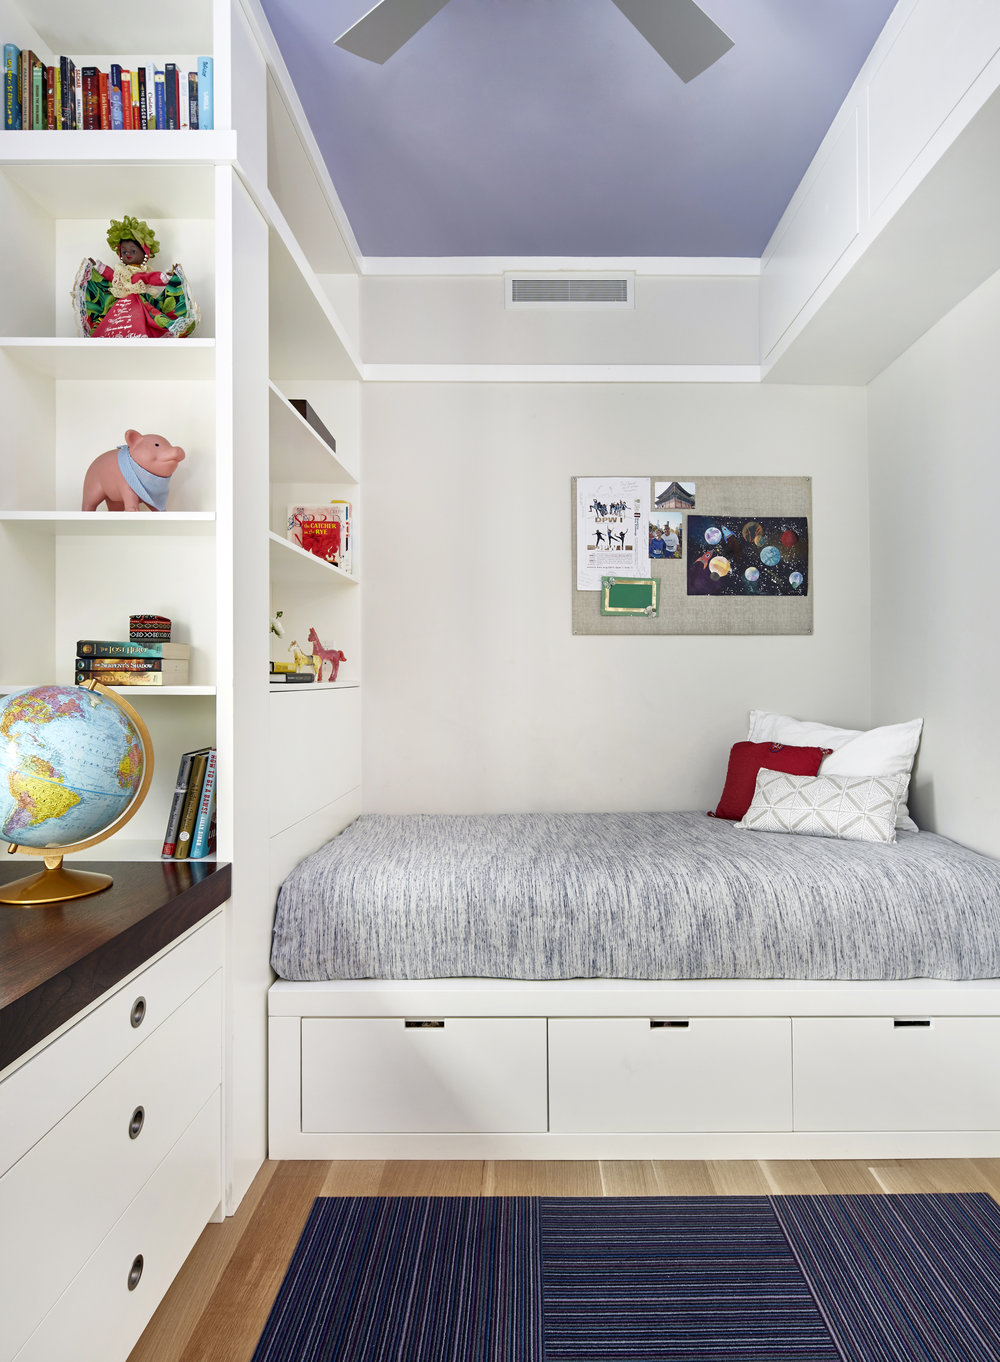 Built-in-Bed-Custom-Desk-Shelves-Teenager-Room-JMorrisDesign-Brooklyn-Interior-Designer.jpg